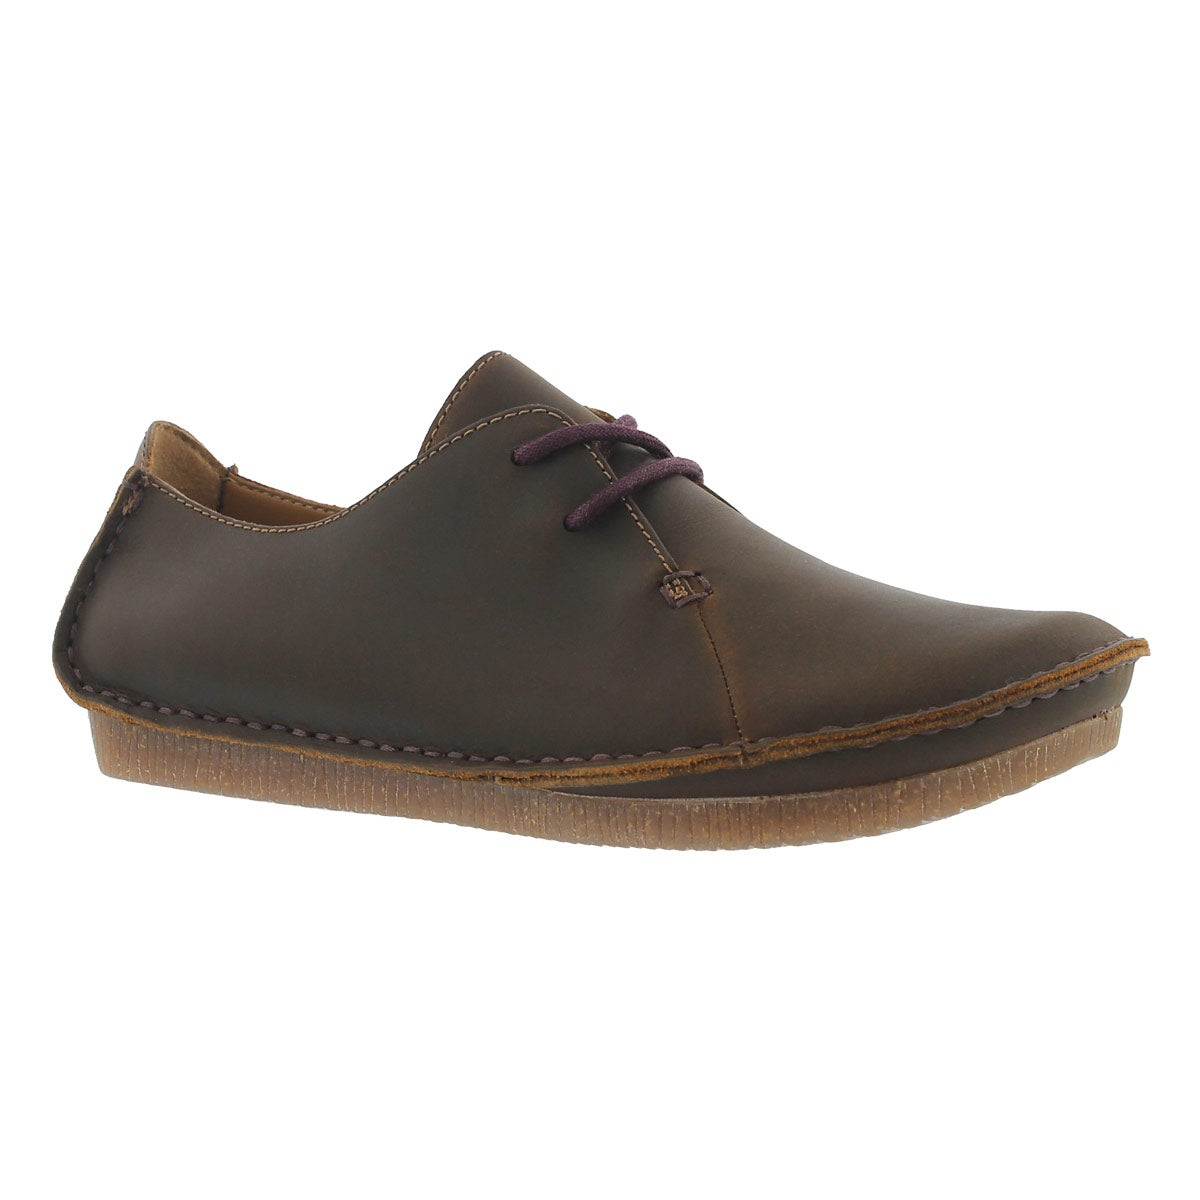 Lds Janey Mae beeswax casual oxford